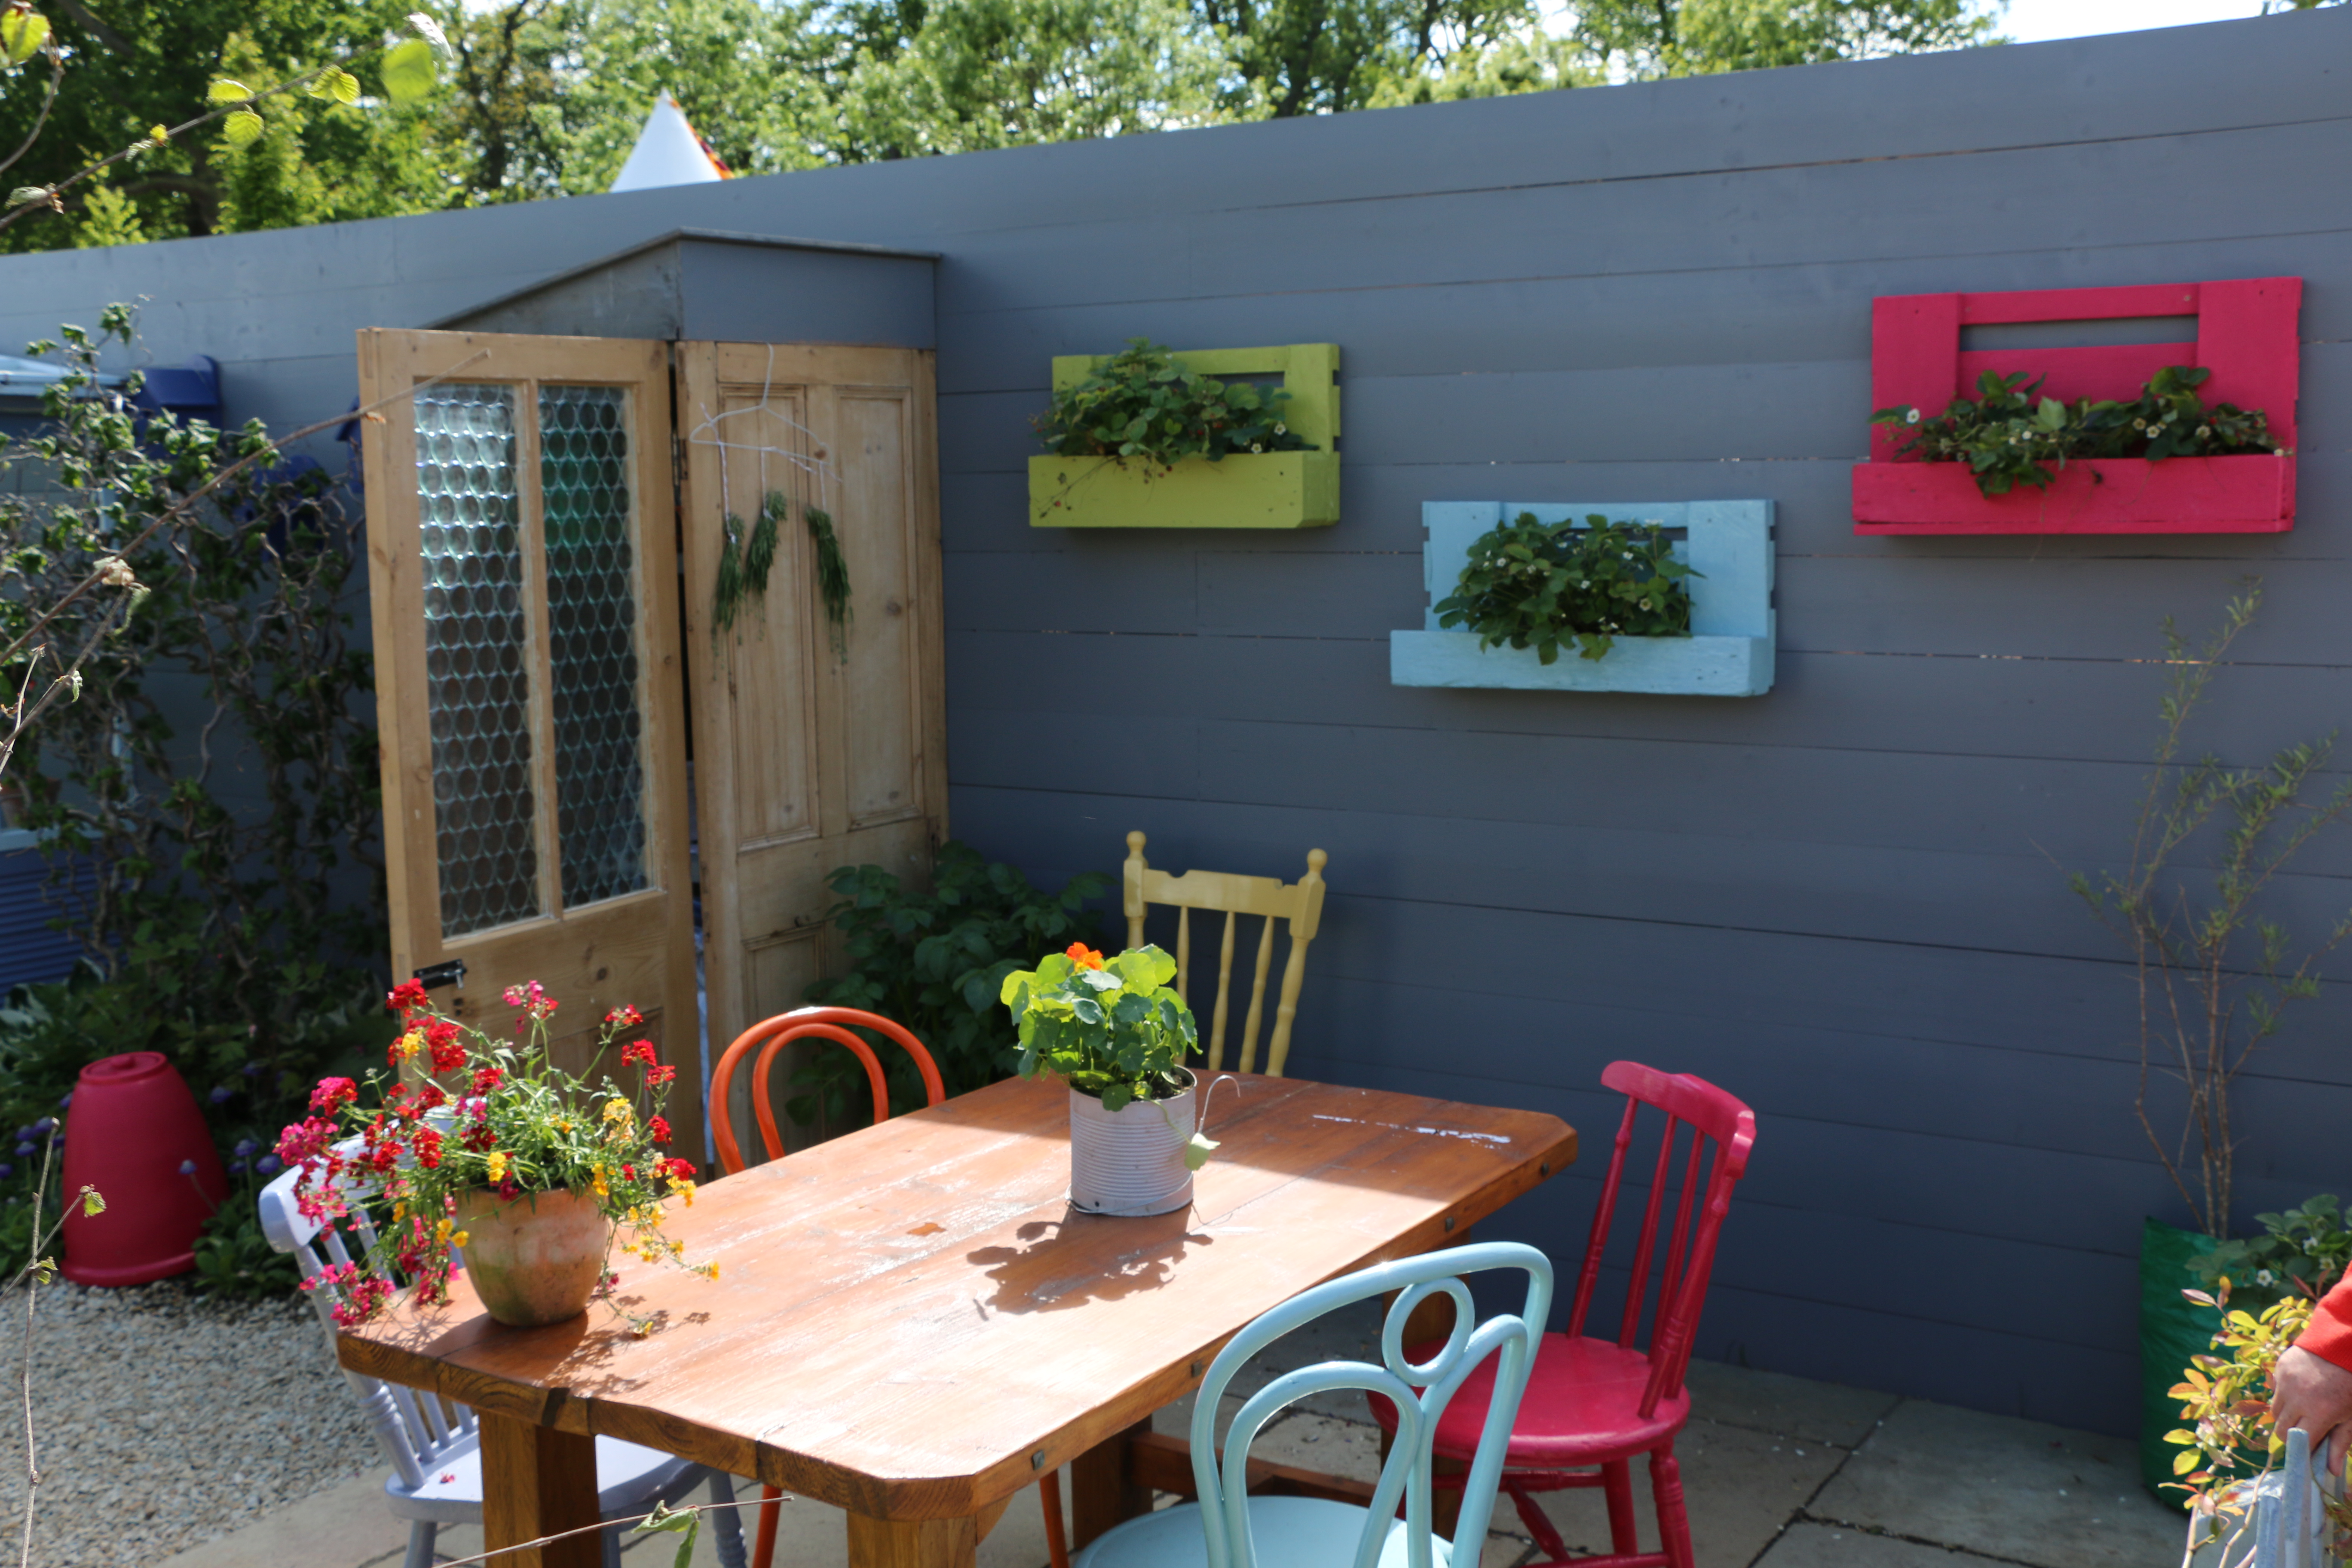 Bloom 2015 colour colour colour jardin the irish country magazine garden featured key trends such as edible gardening and upcycling as well as using lots of colour baanklon Gallery